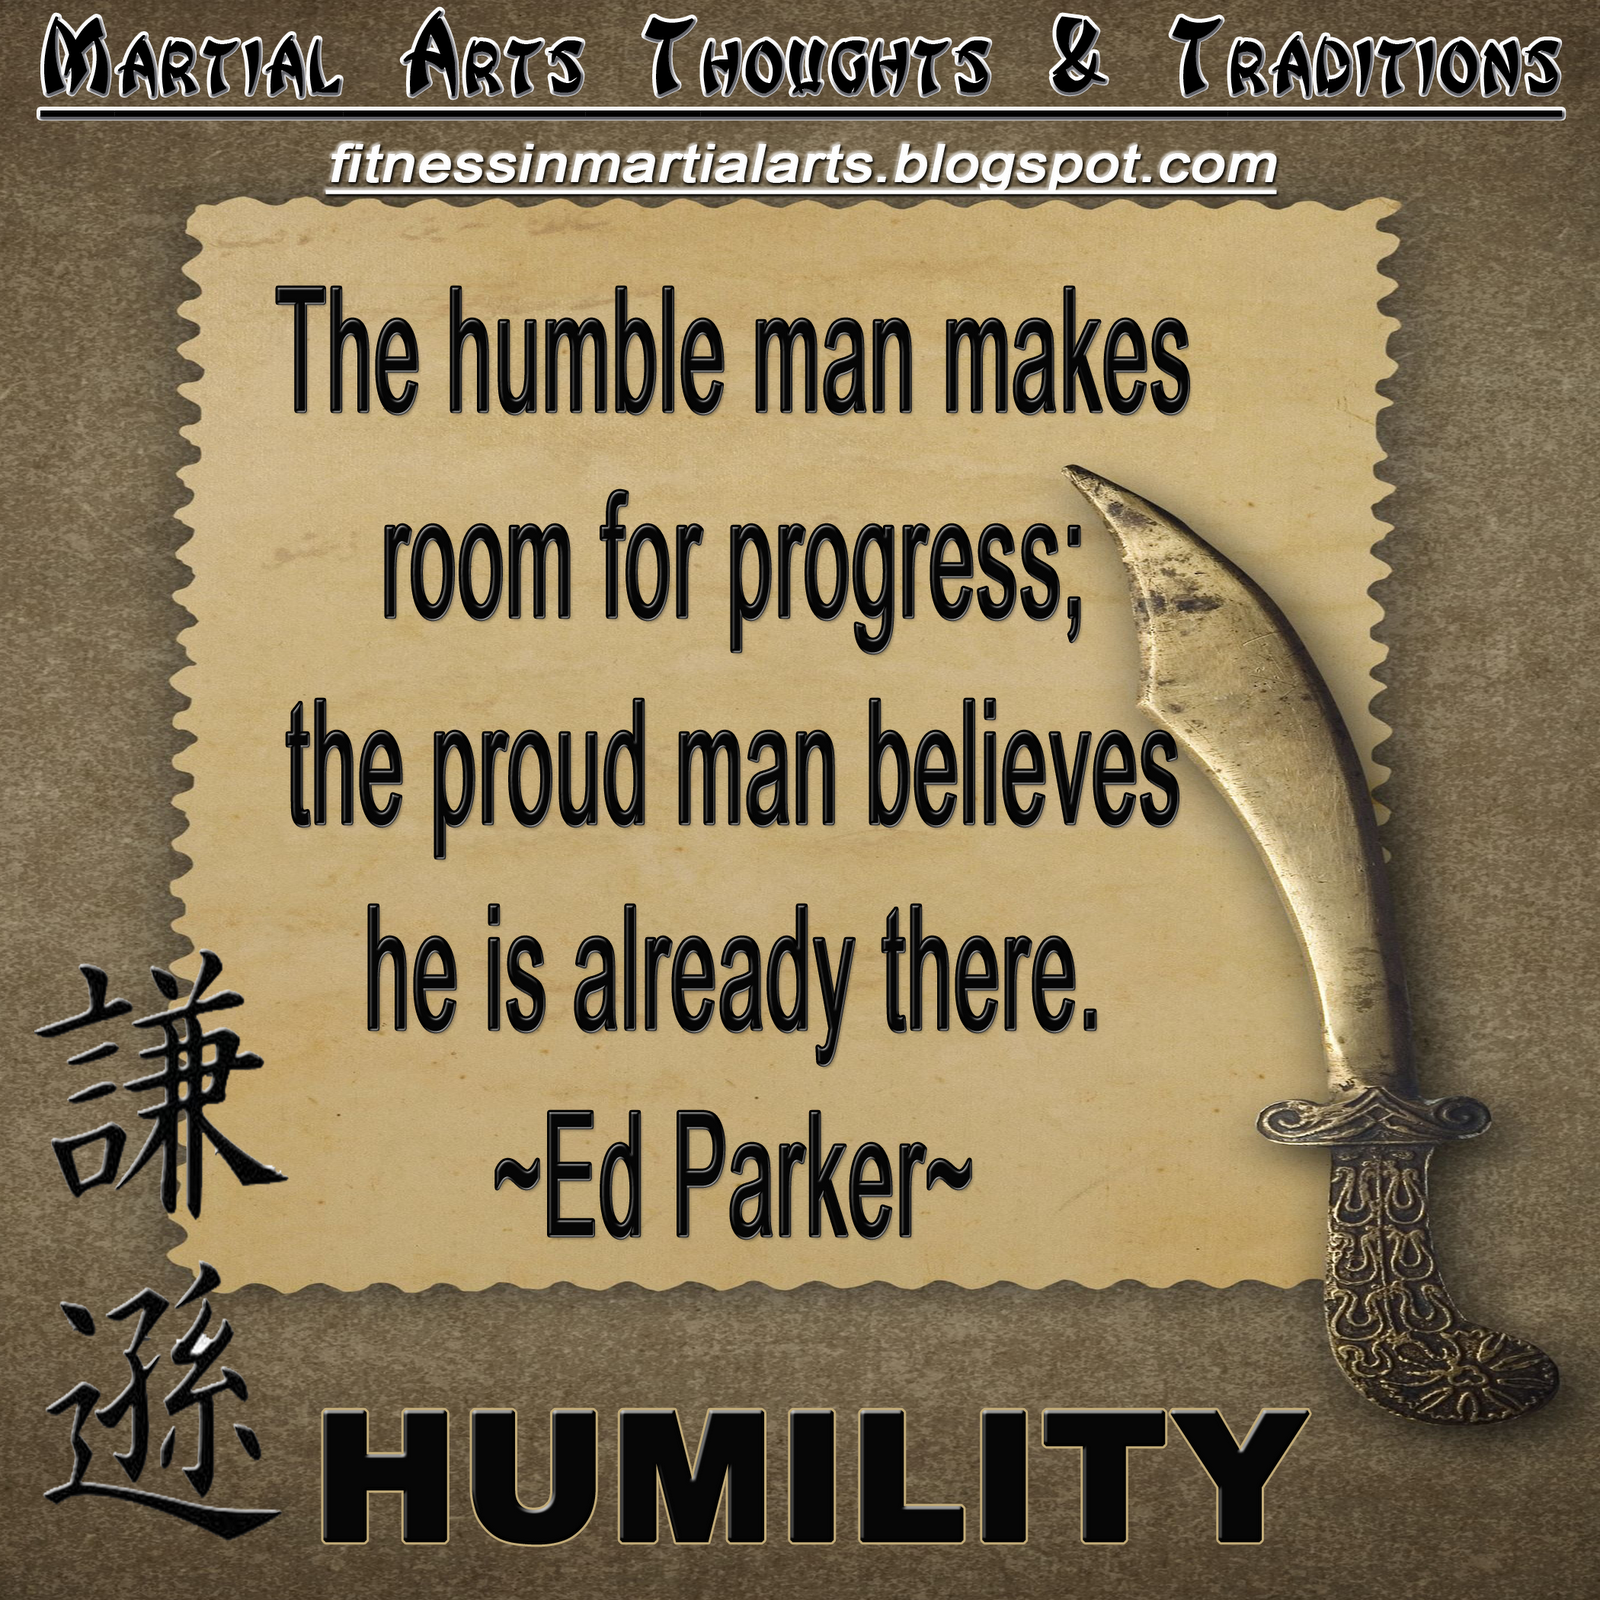 best images about humility mother teresa 17 best images about humility mother teresa motivational speakers and lottery winner